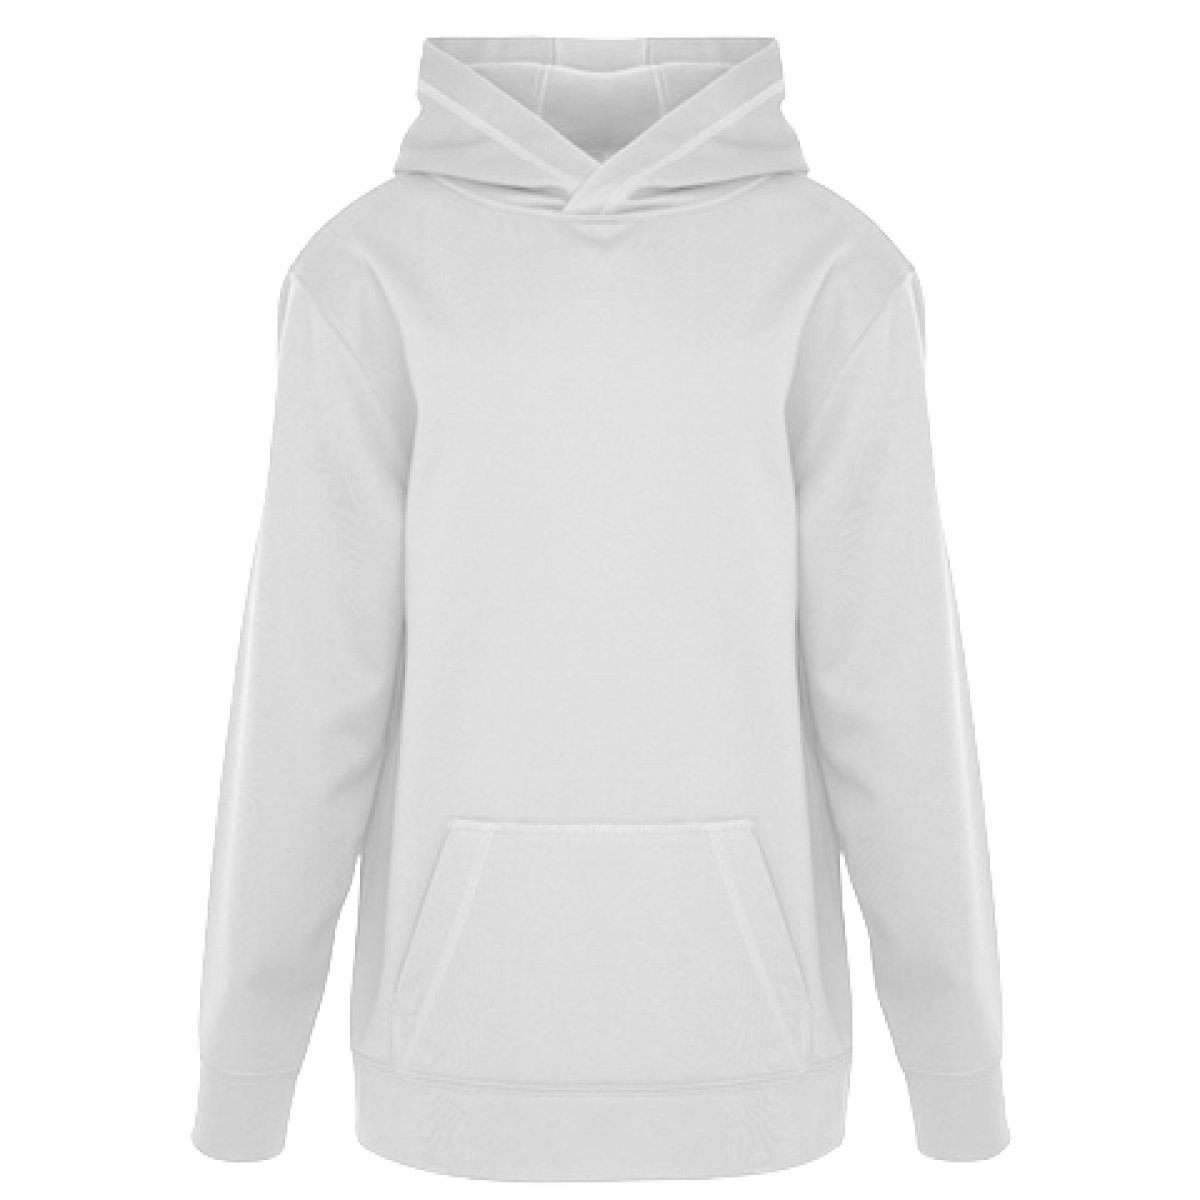 Game Day Fleece Hooded Ladies Sweatshirt-White-L